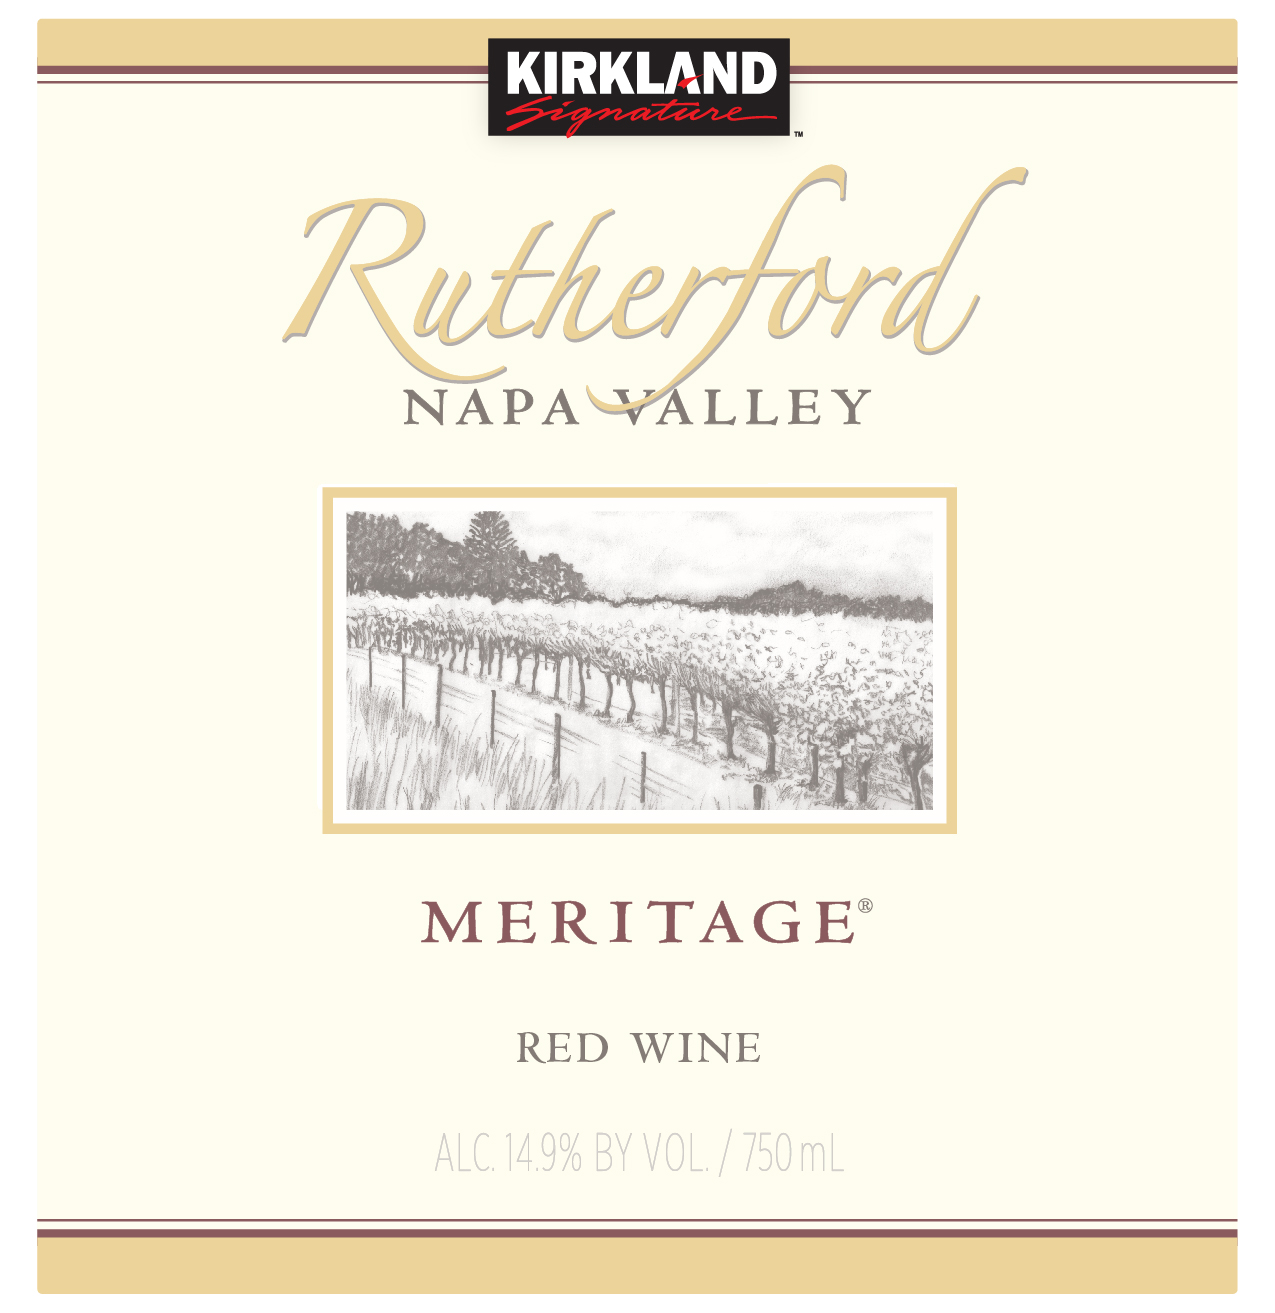 This Kirkland Signature Rutherford Meritage is a 70% Cabernet controlled blend, with 15% Merlot, 12% Petit Verdot, and 3% Cabernet Franc.  Cabernet Sauvignon offers dark, rich black fruit character to the blend. The Merlot brings a softer tannins and sweet red fruit notes to the blend. Petit Verdot delivers grip, texture and dark brooding color lifted by the fragrant tobacco leaf qualities of Cabernet Franc. Careful maturation in small French oak barrels layered the Kirkland Signature Rutherford Meritage with fully integrated spice notes and the blend is supported by a seamless thread of natural ripe acidity.